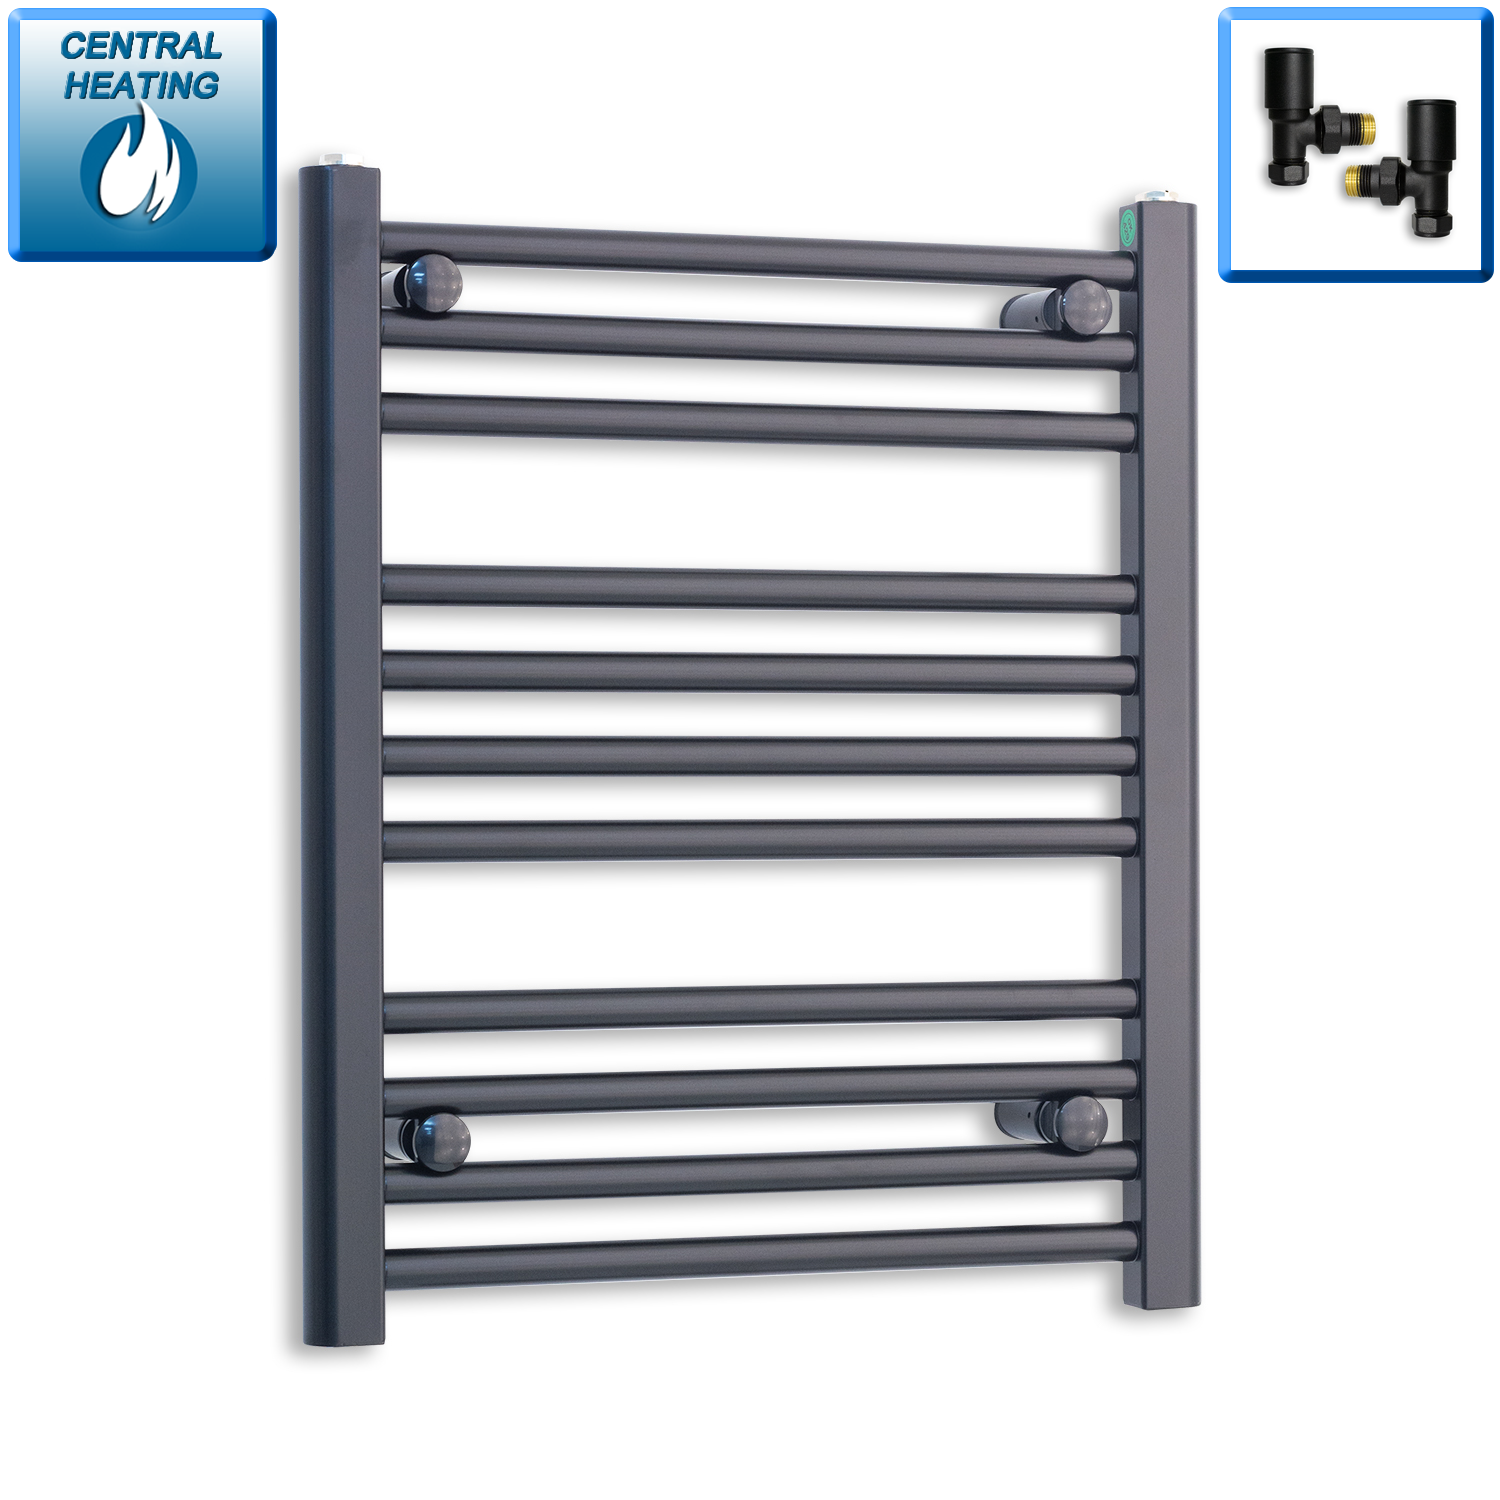 500mm Wide 600mm High Black Towel Rail Radiator With Angled Valve